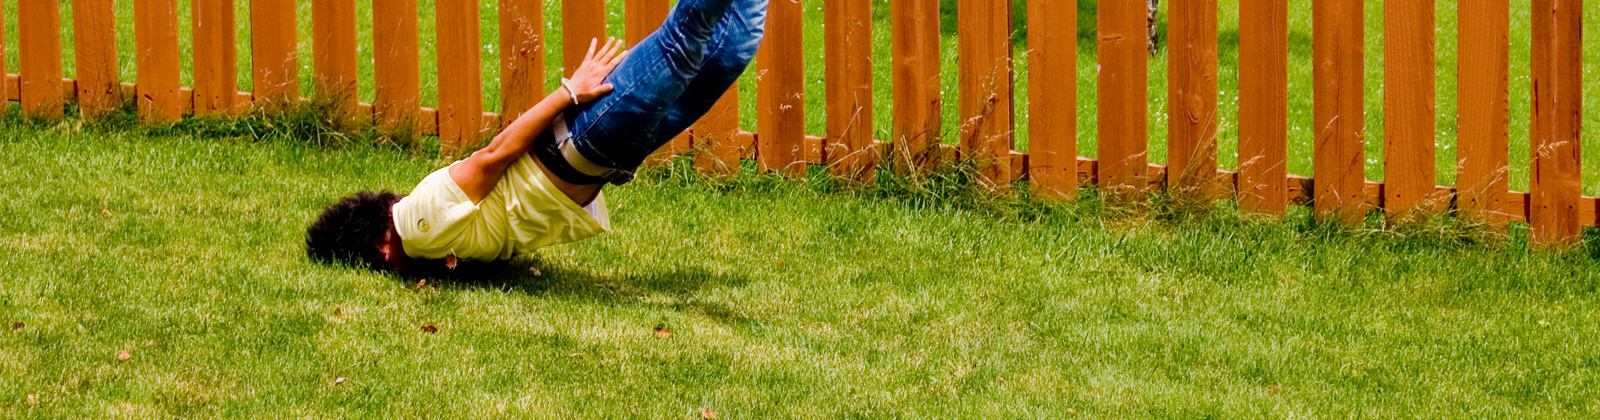 A guy does a faceplant in the grass.